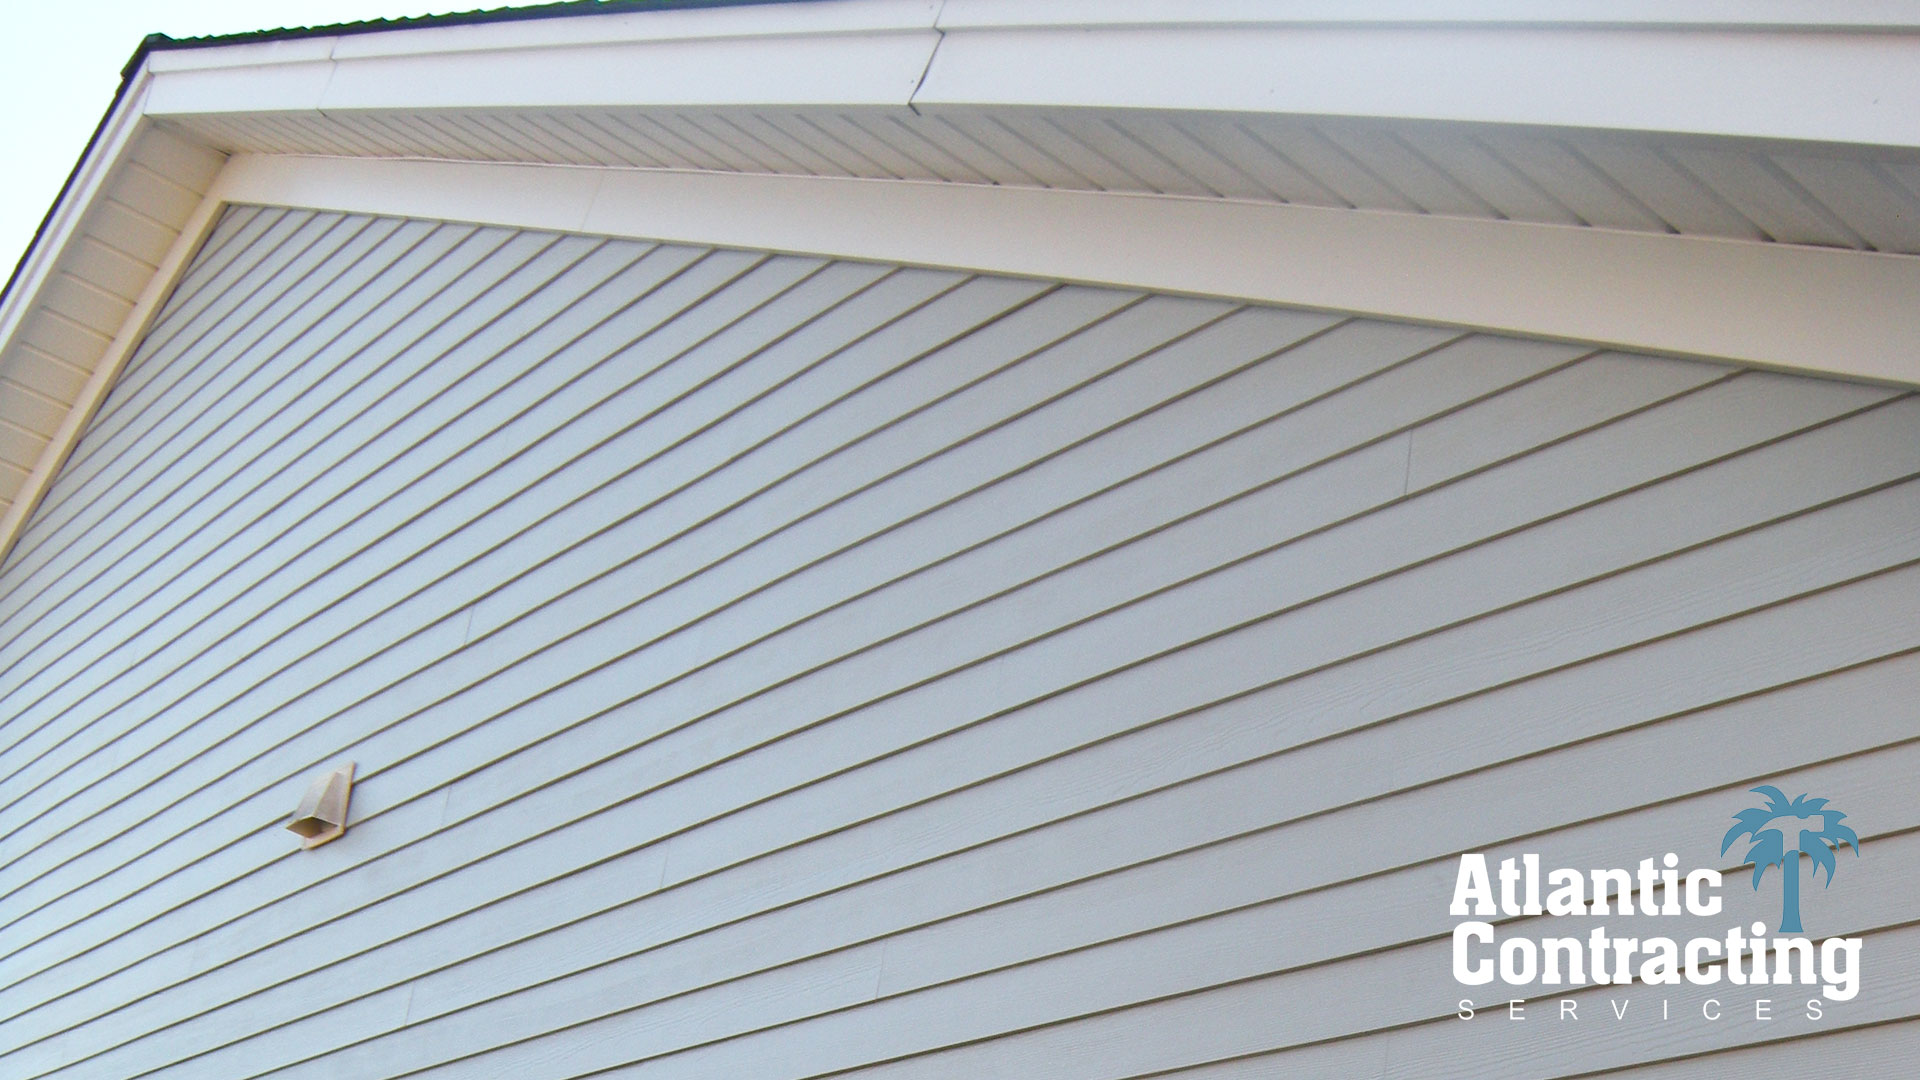 James Hardie Siding Contractor, Myrtle Beach : We Replaced Old Vinyl Siding with HardiPlank Siding